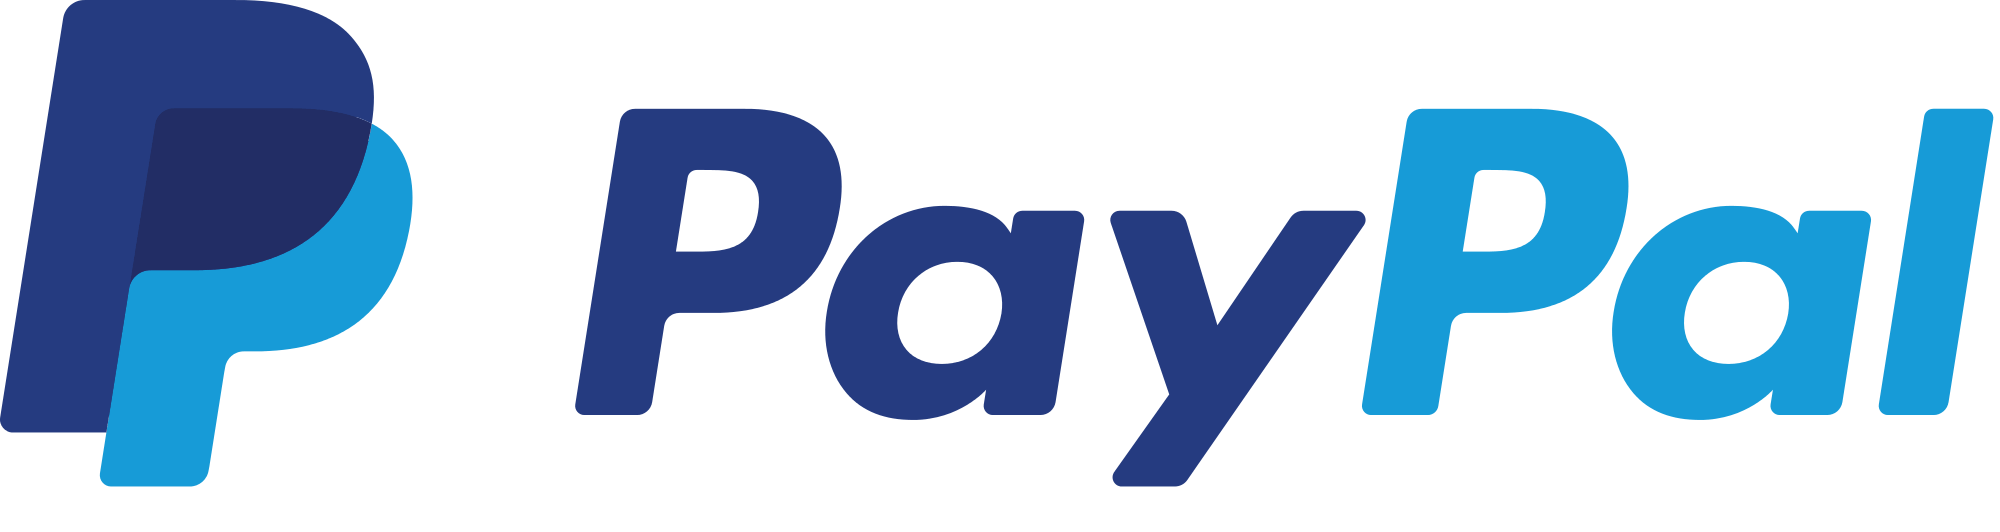 pay-footer3